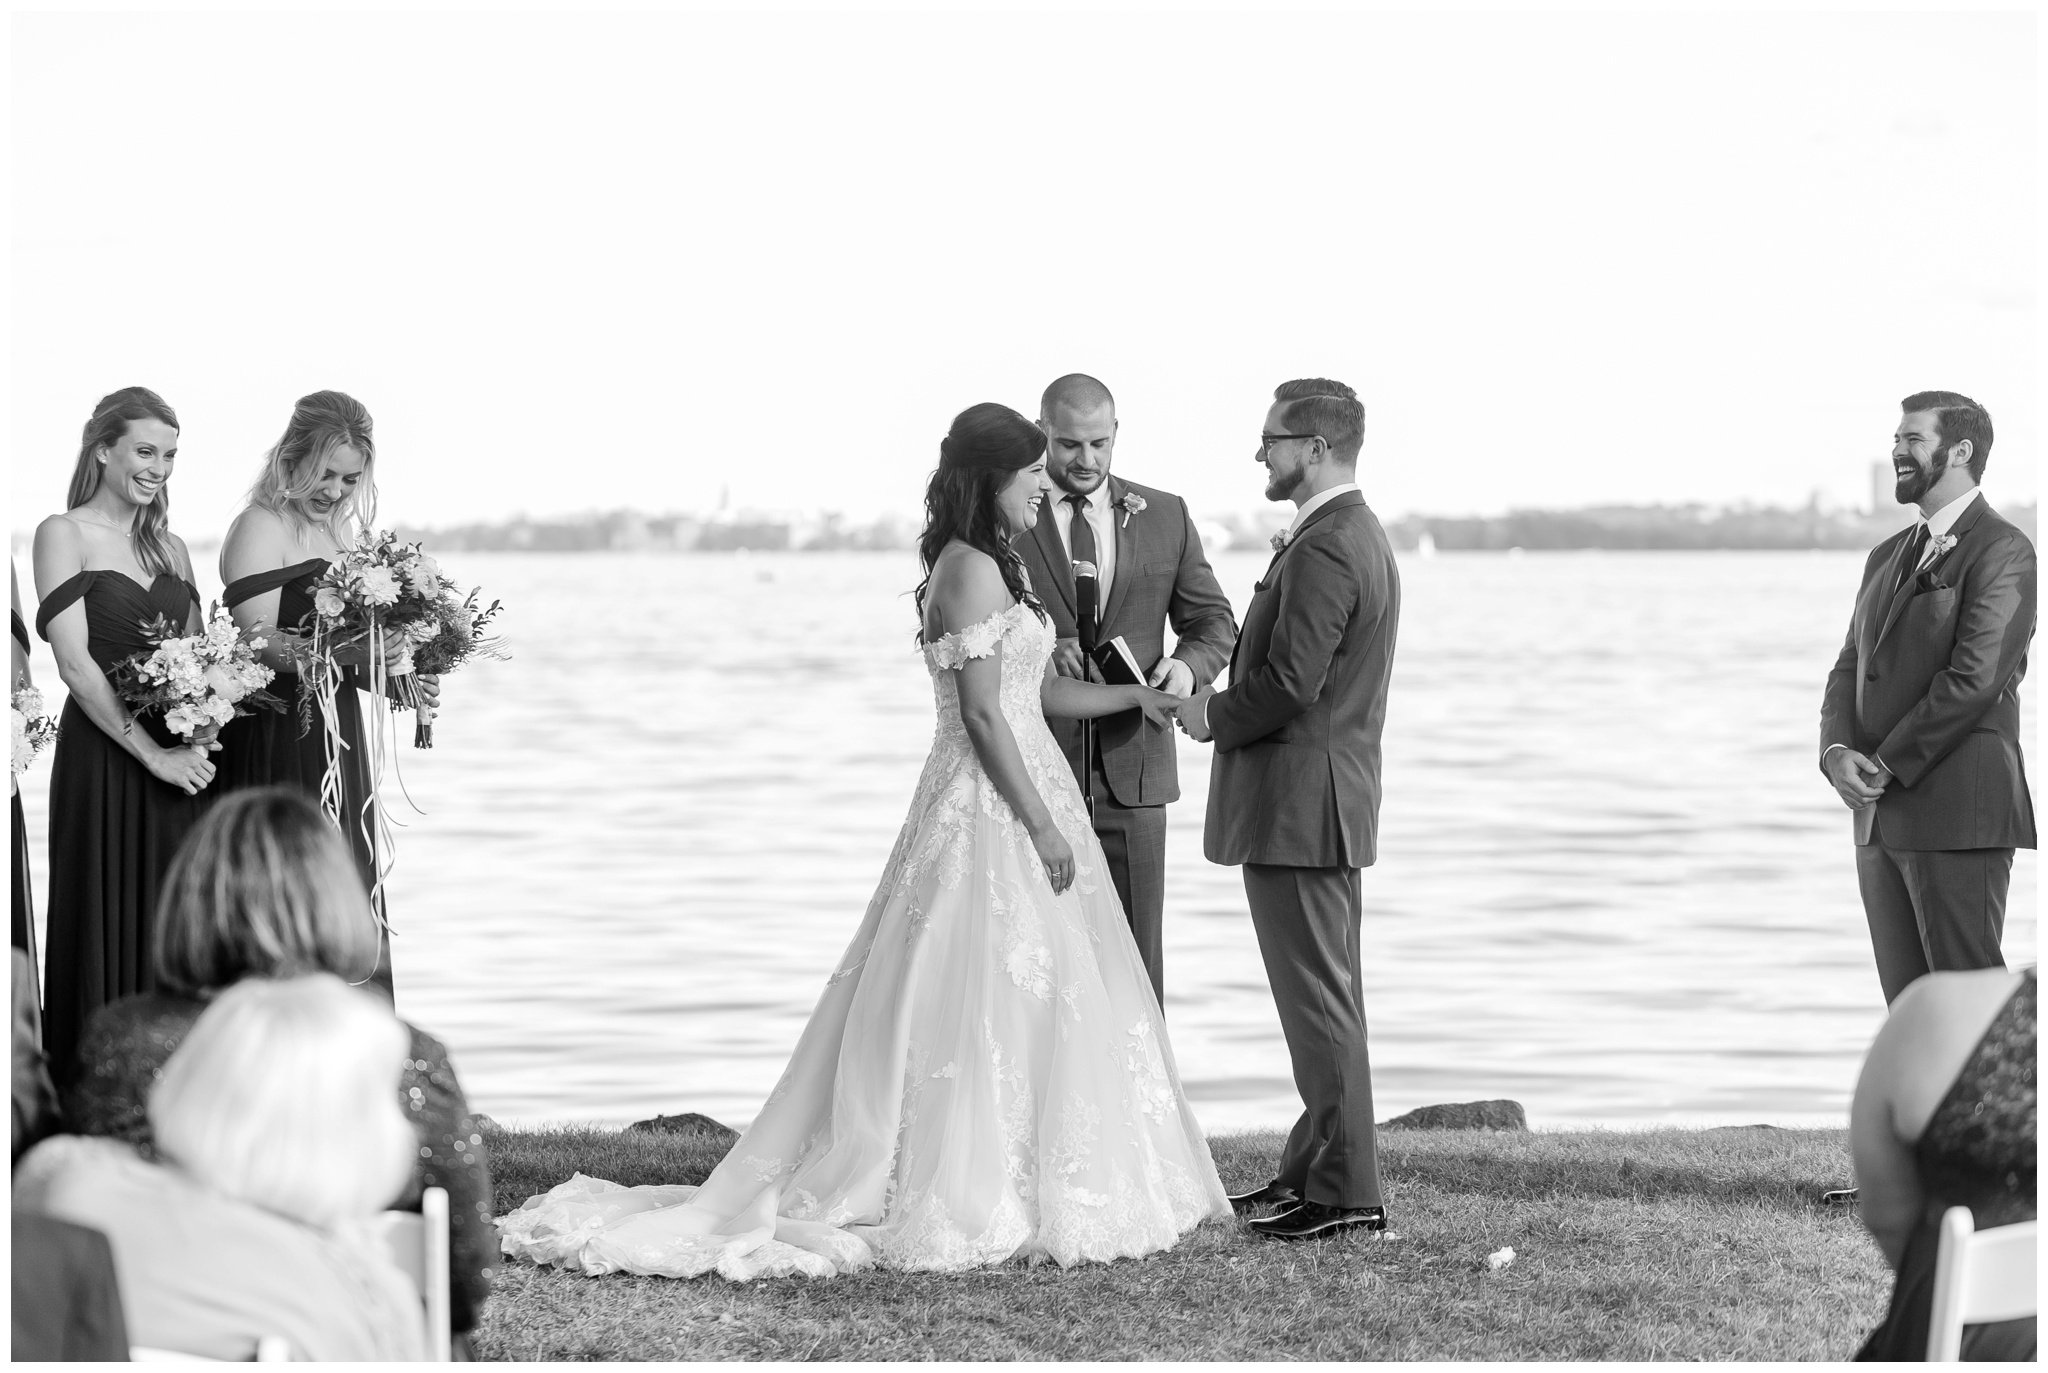 bishops_bay_country_club_wedding_middleton_wisconsin_caynay_photo_4714.jpg